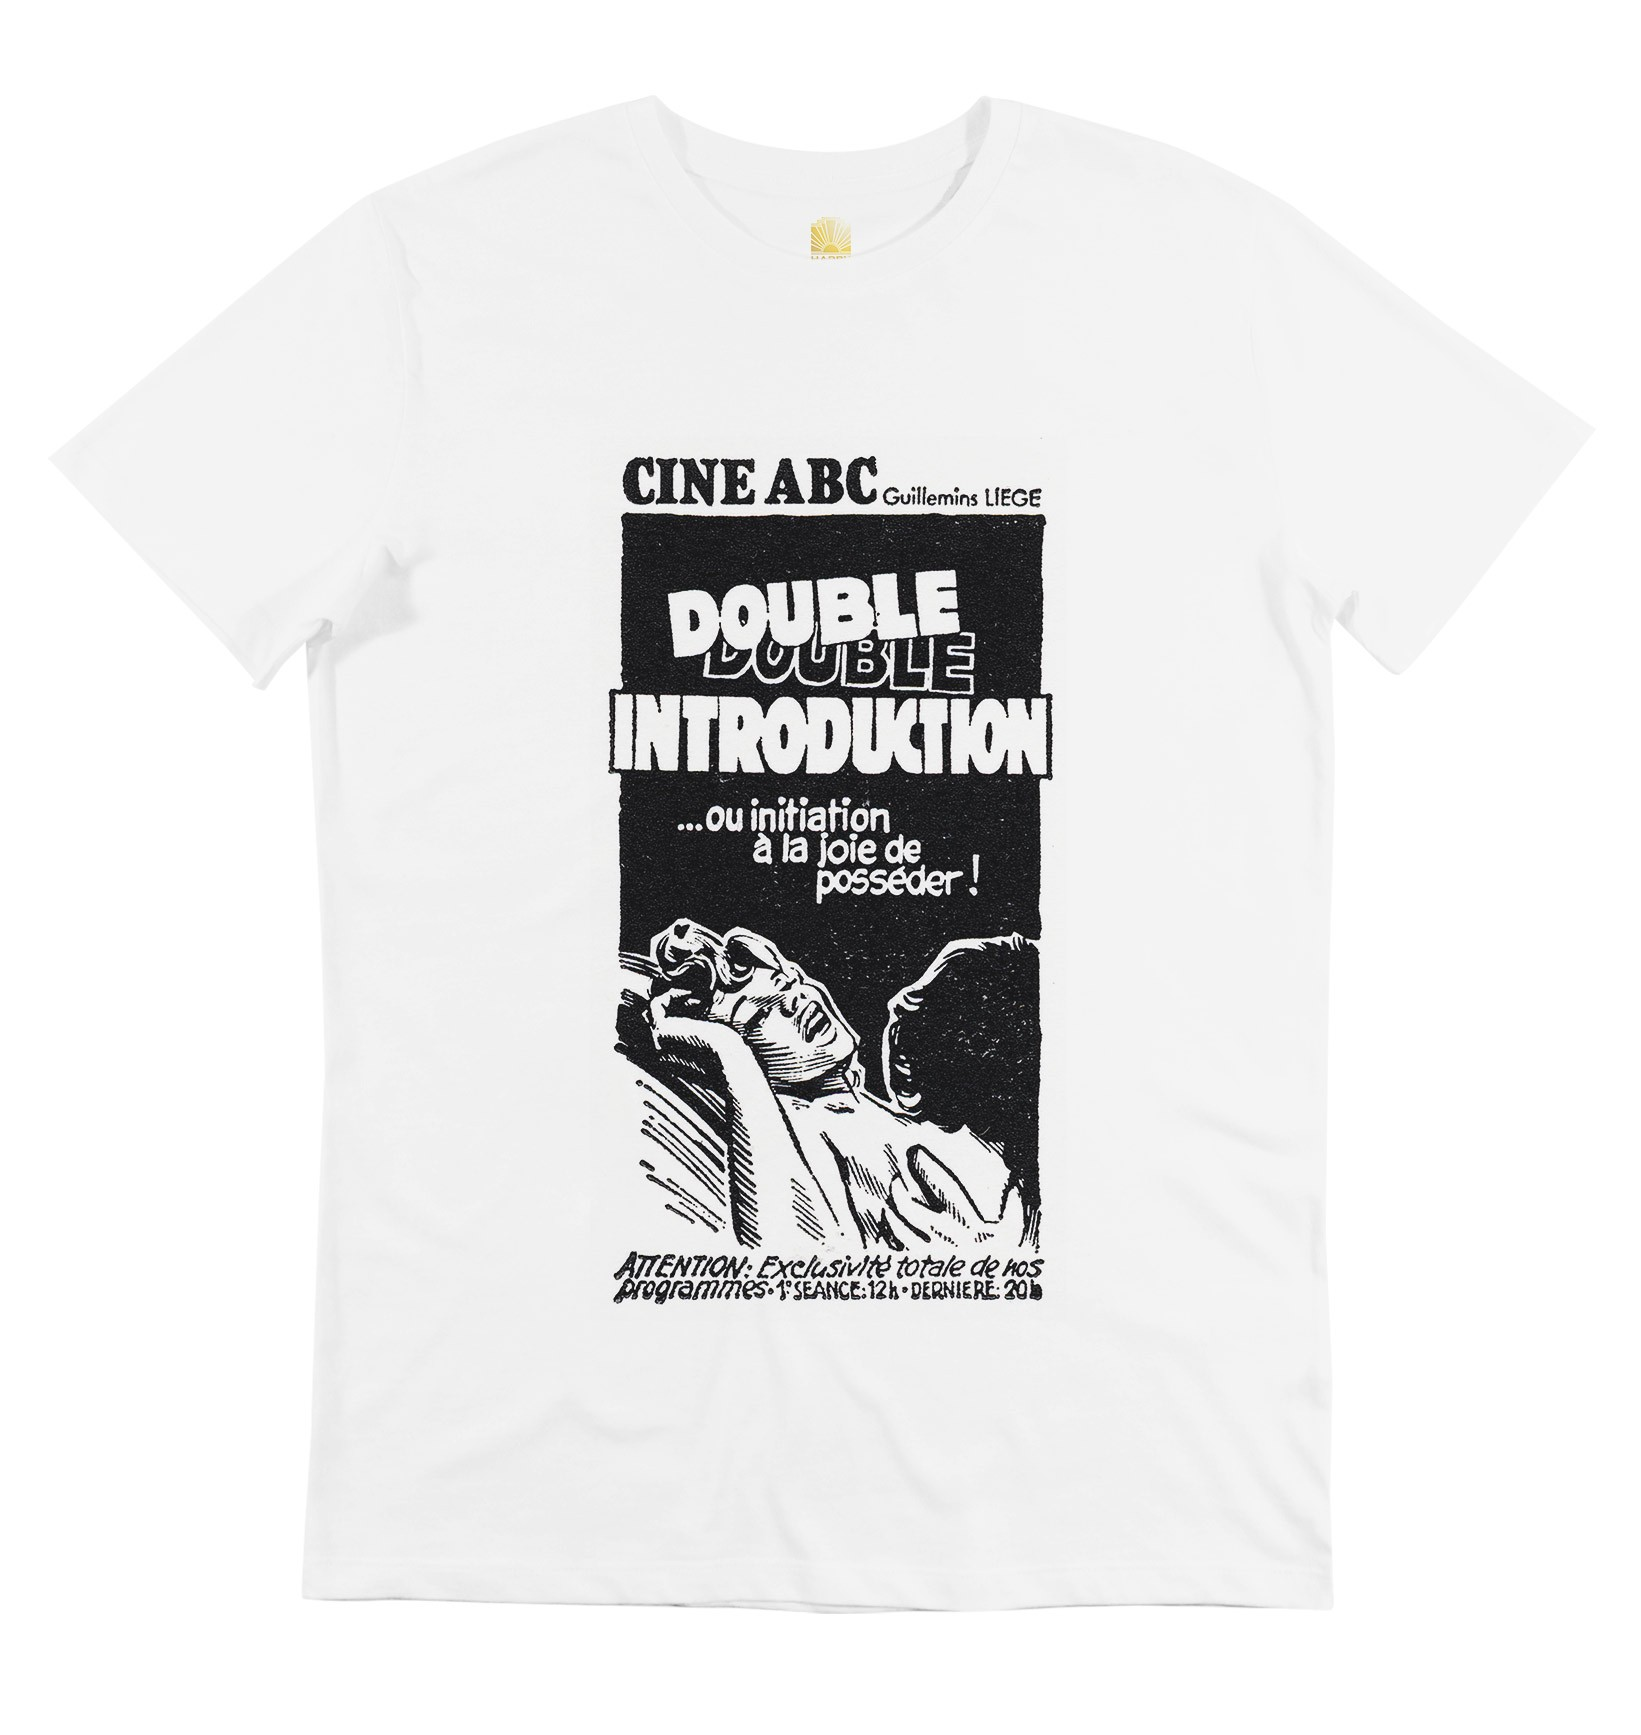 t-shirt-double-introduction